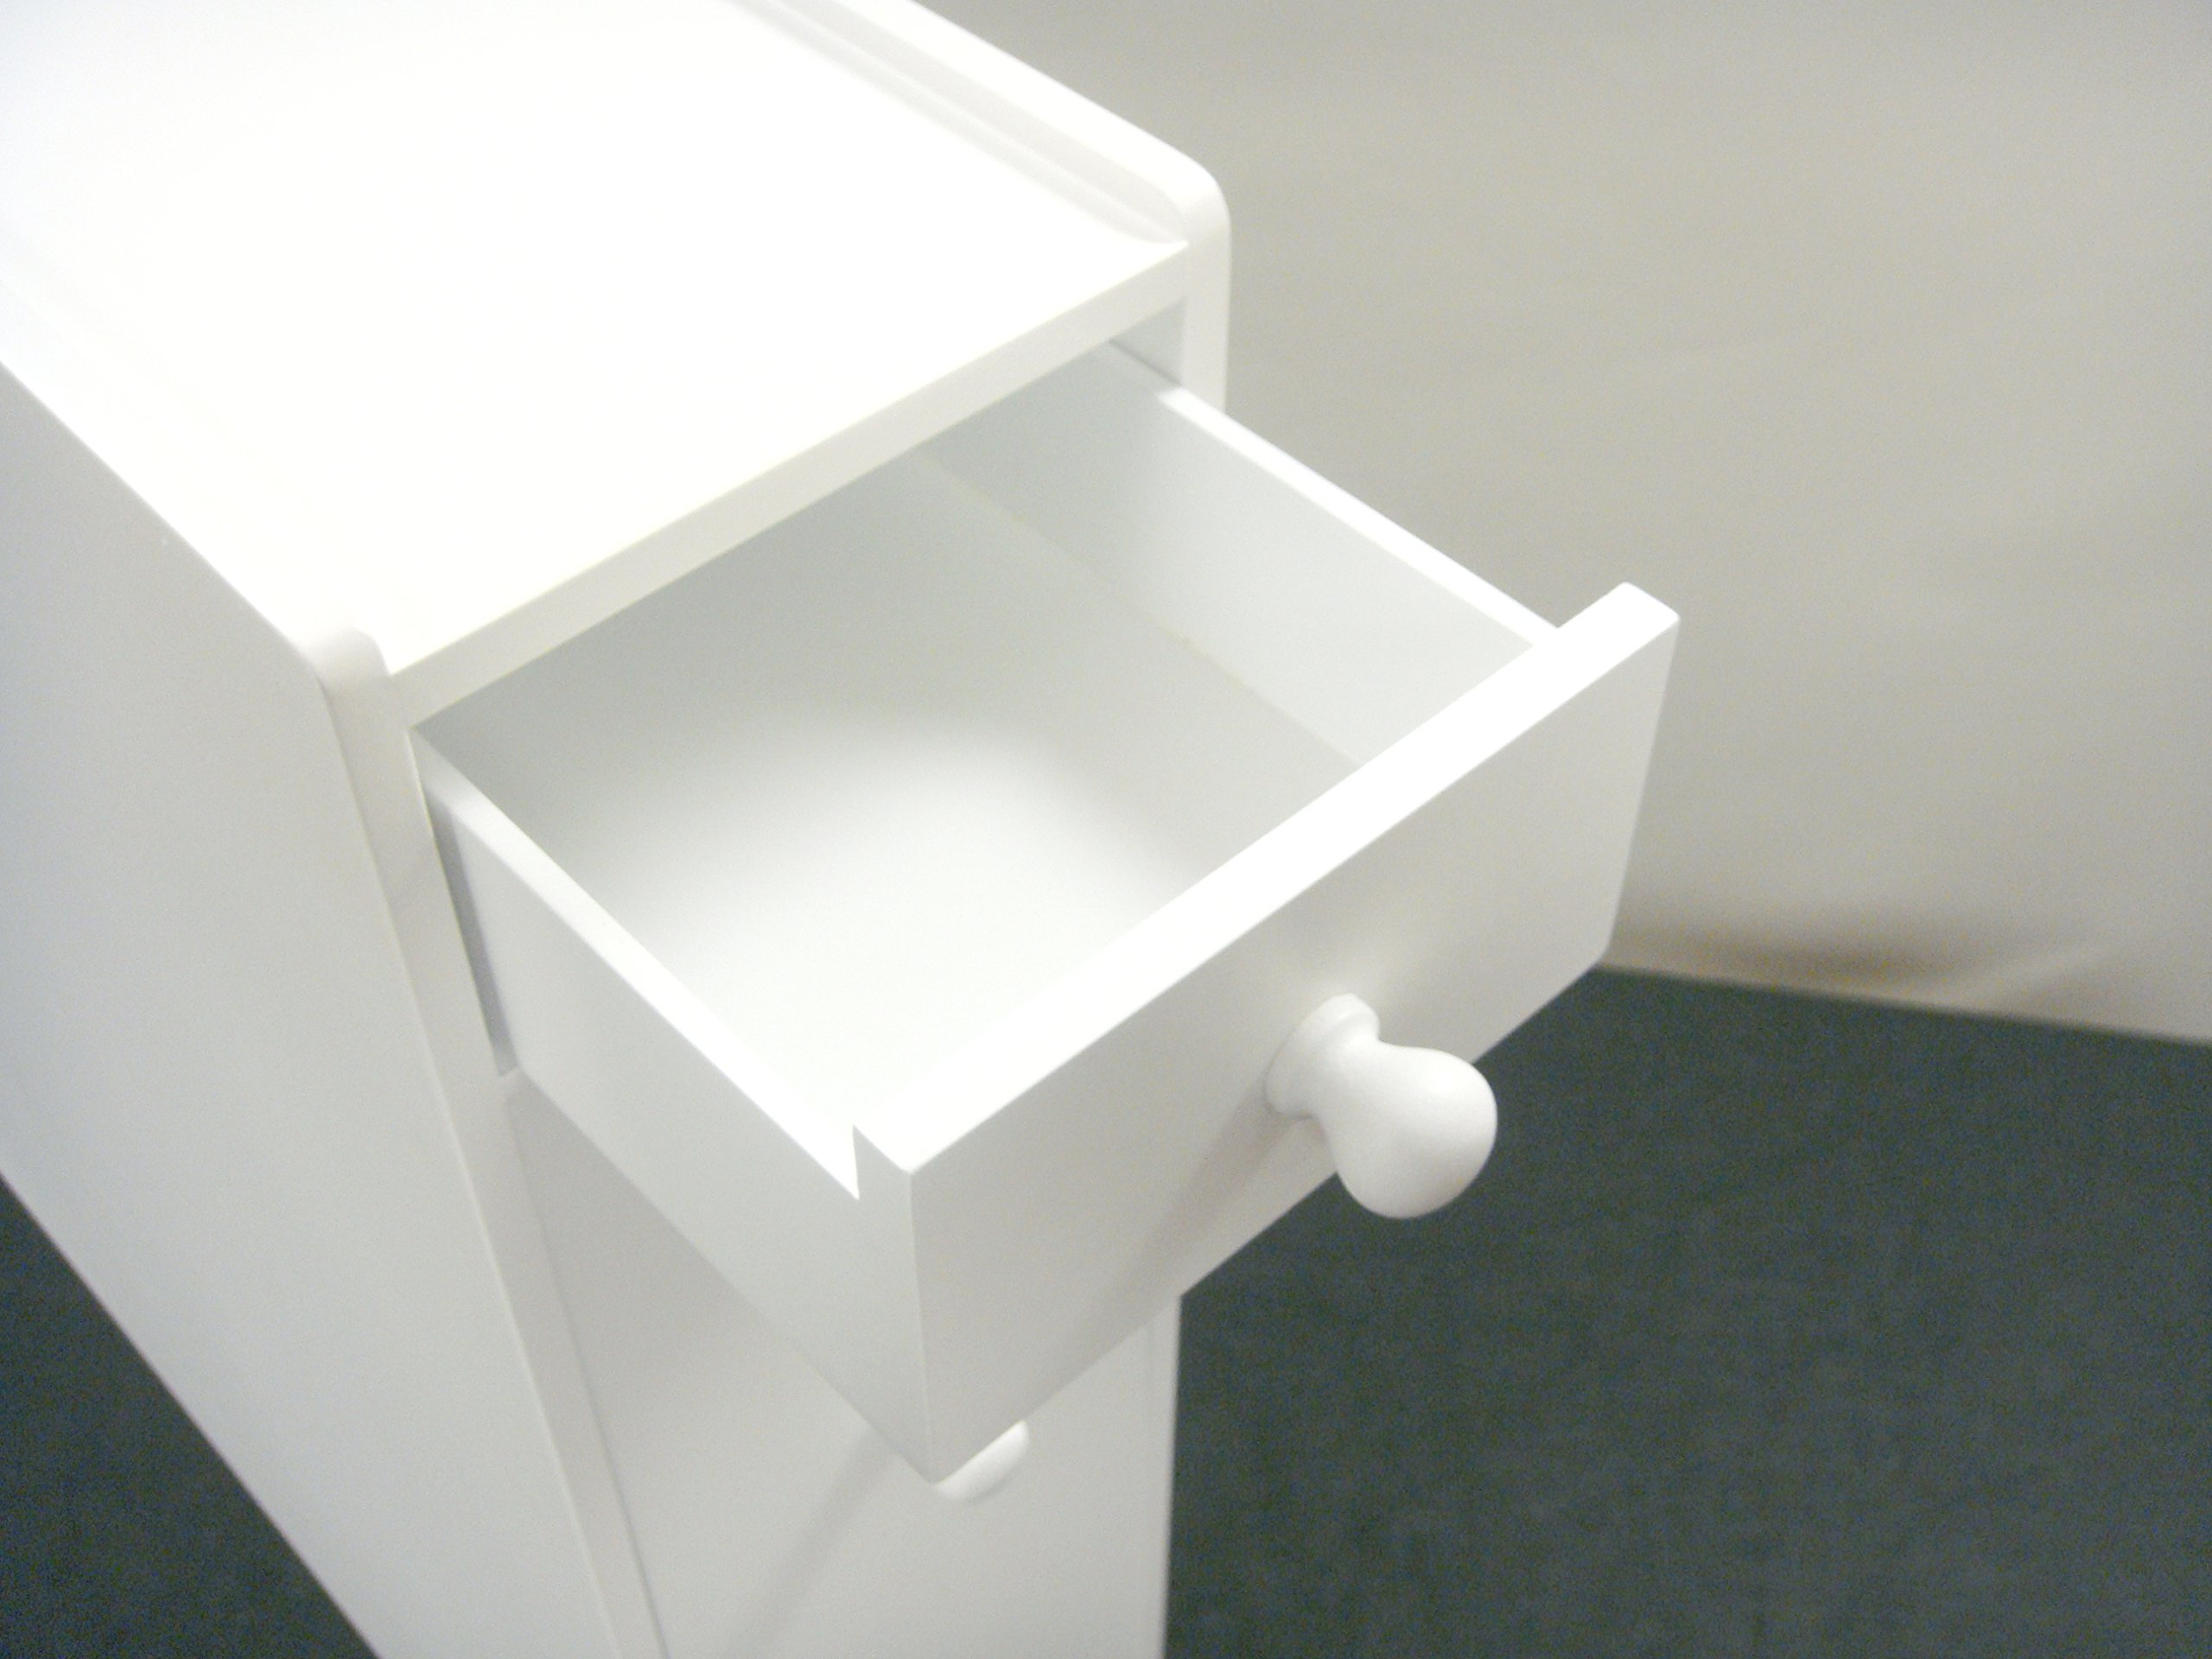 Proman Products Bathroom Floor Cabinet Wood in Pure White by Proman Products (Image #9)